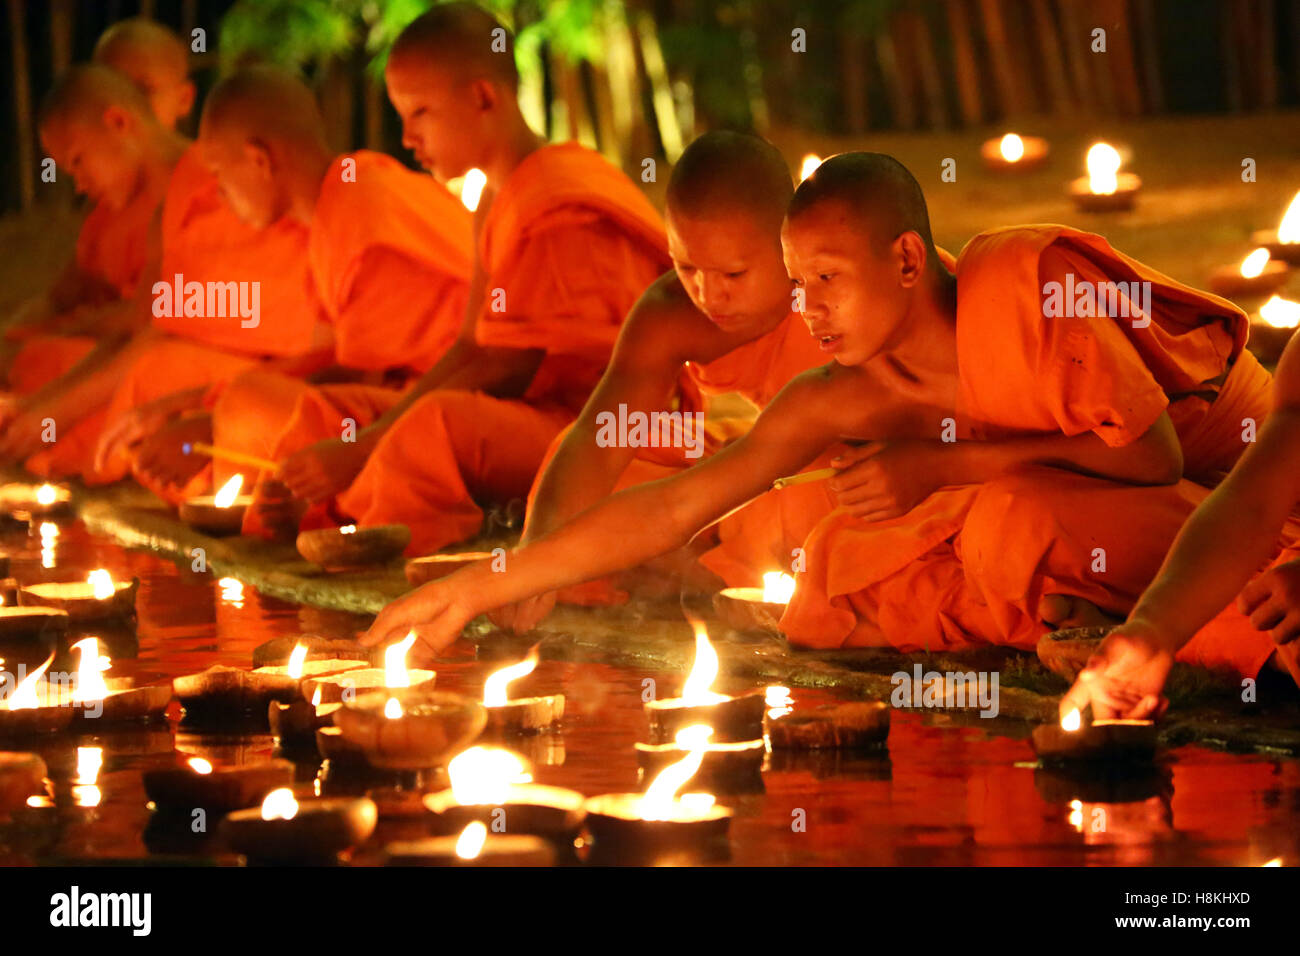 Chiang Mai, Thailand. 14th November 2016. Monks celebrate the Loy Krathong festival at Wat Phan Tao Temple, Chiang - Stock Image